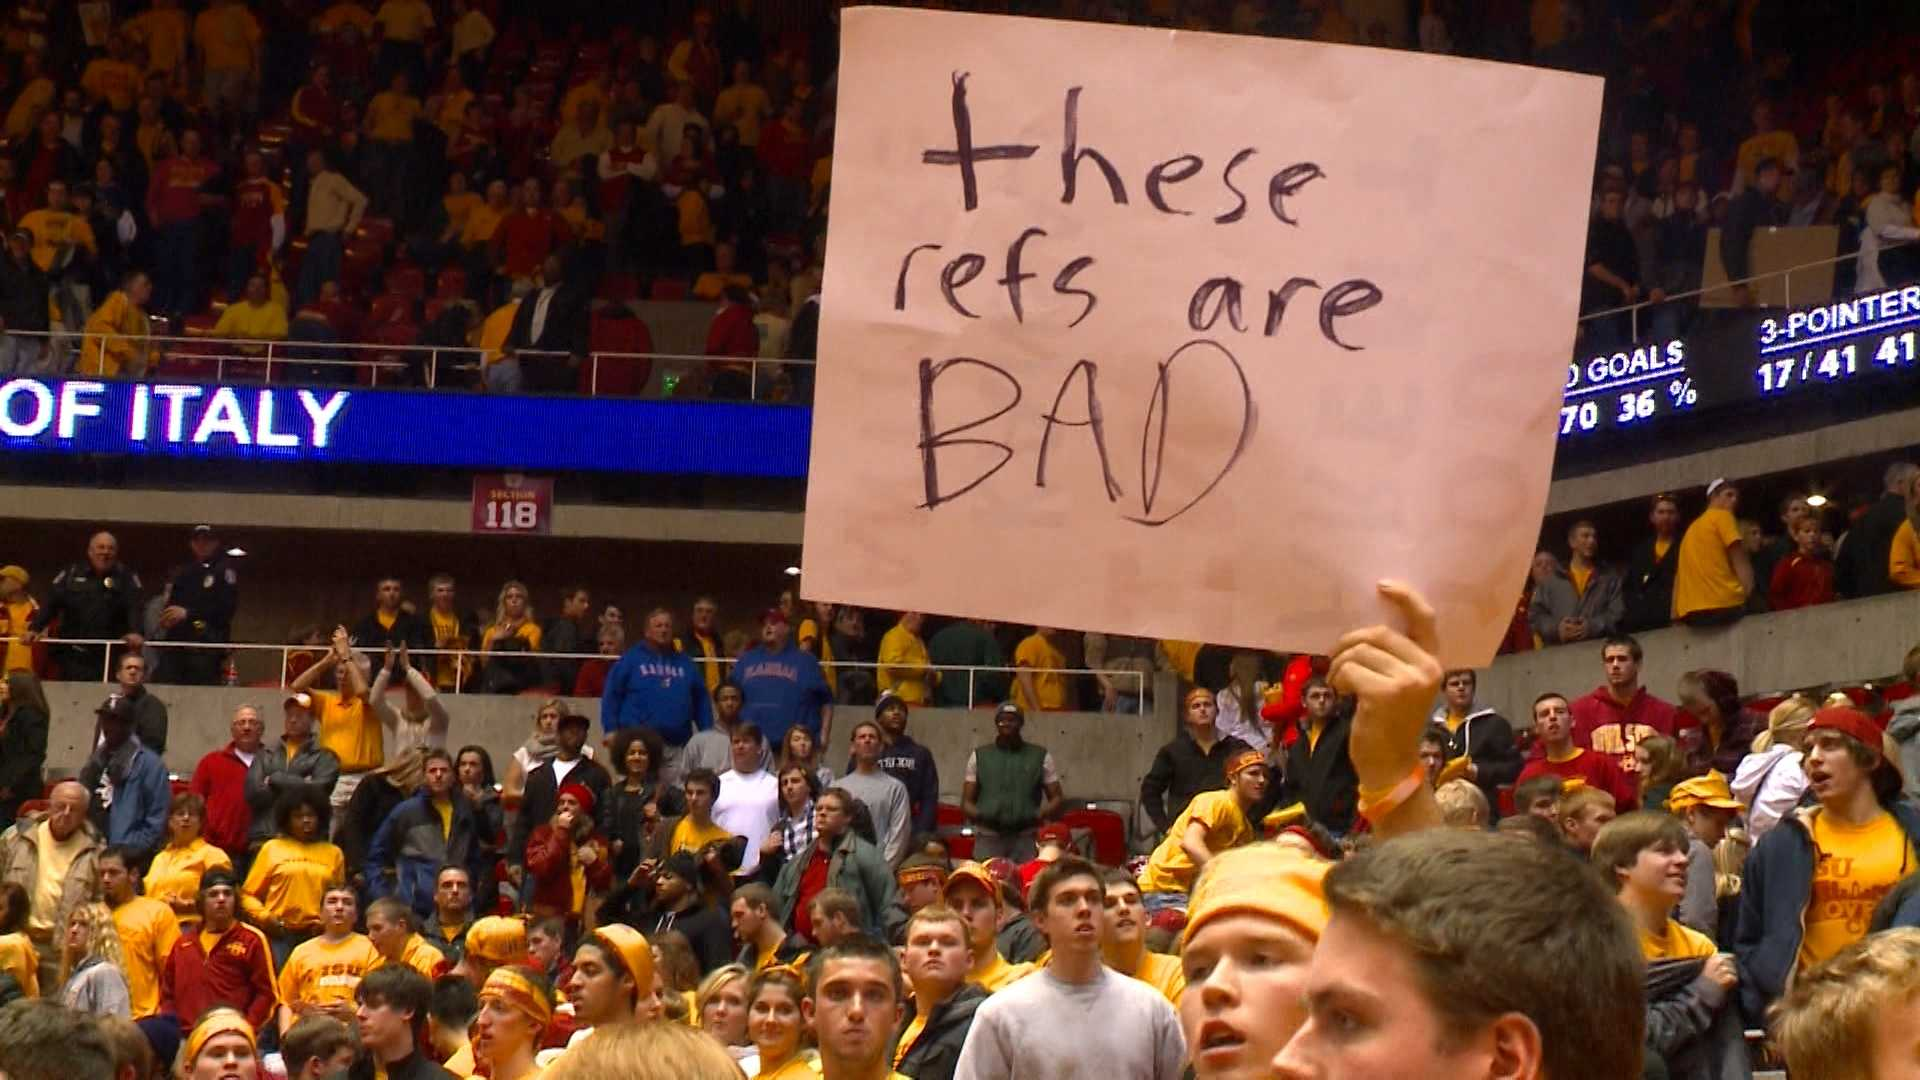 A Cyclone fan expresses his view of ISU-Kansas outcome